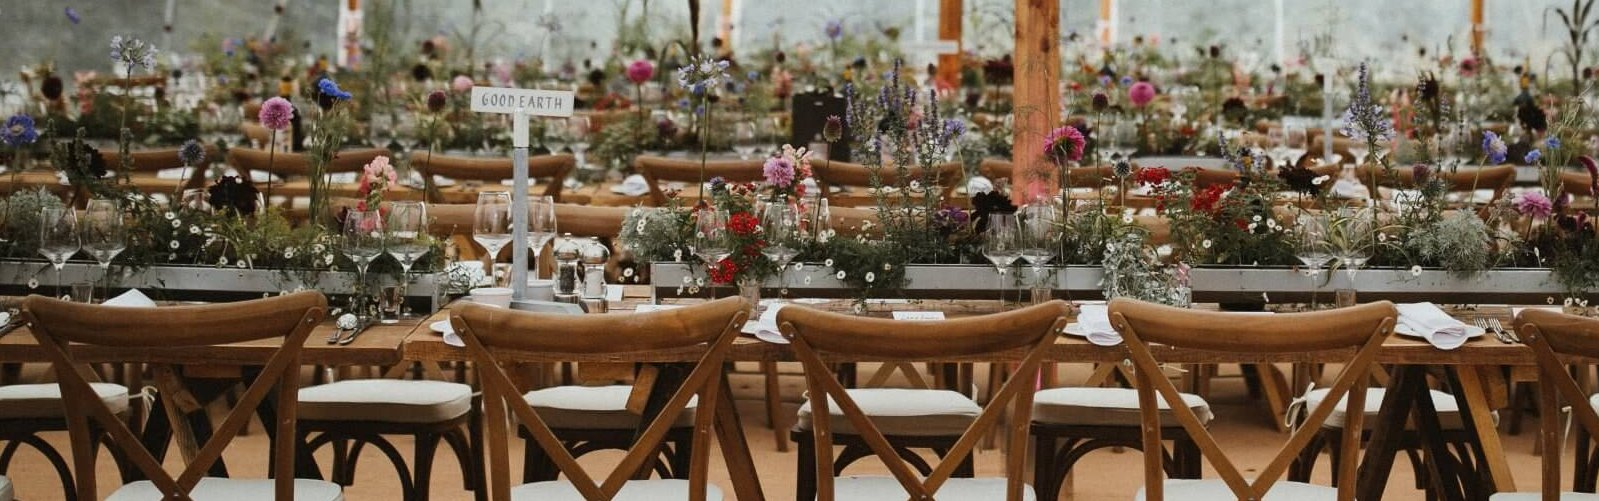 Falconhurst trestle tables